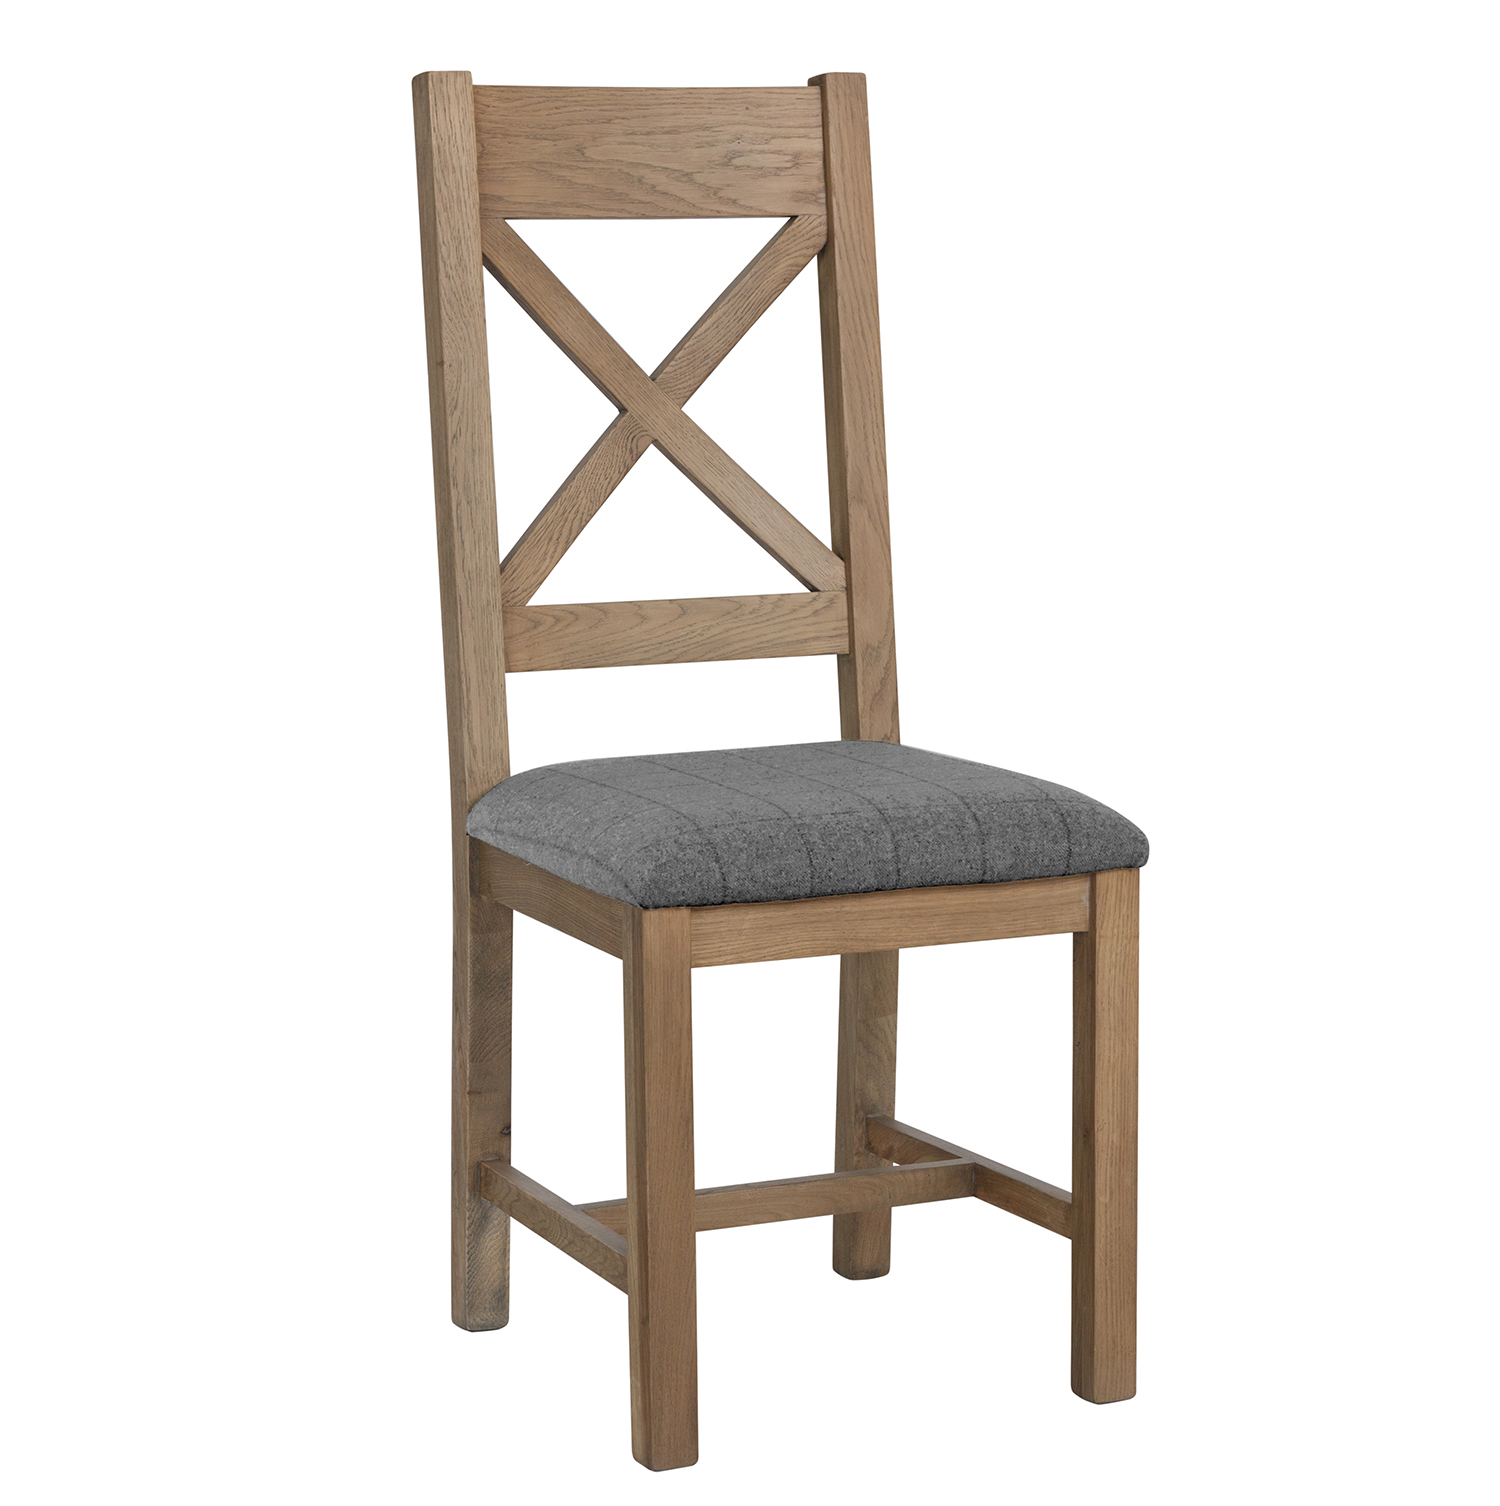 Heritage Oak Cross Back Dining Chair - Grey Check